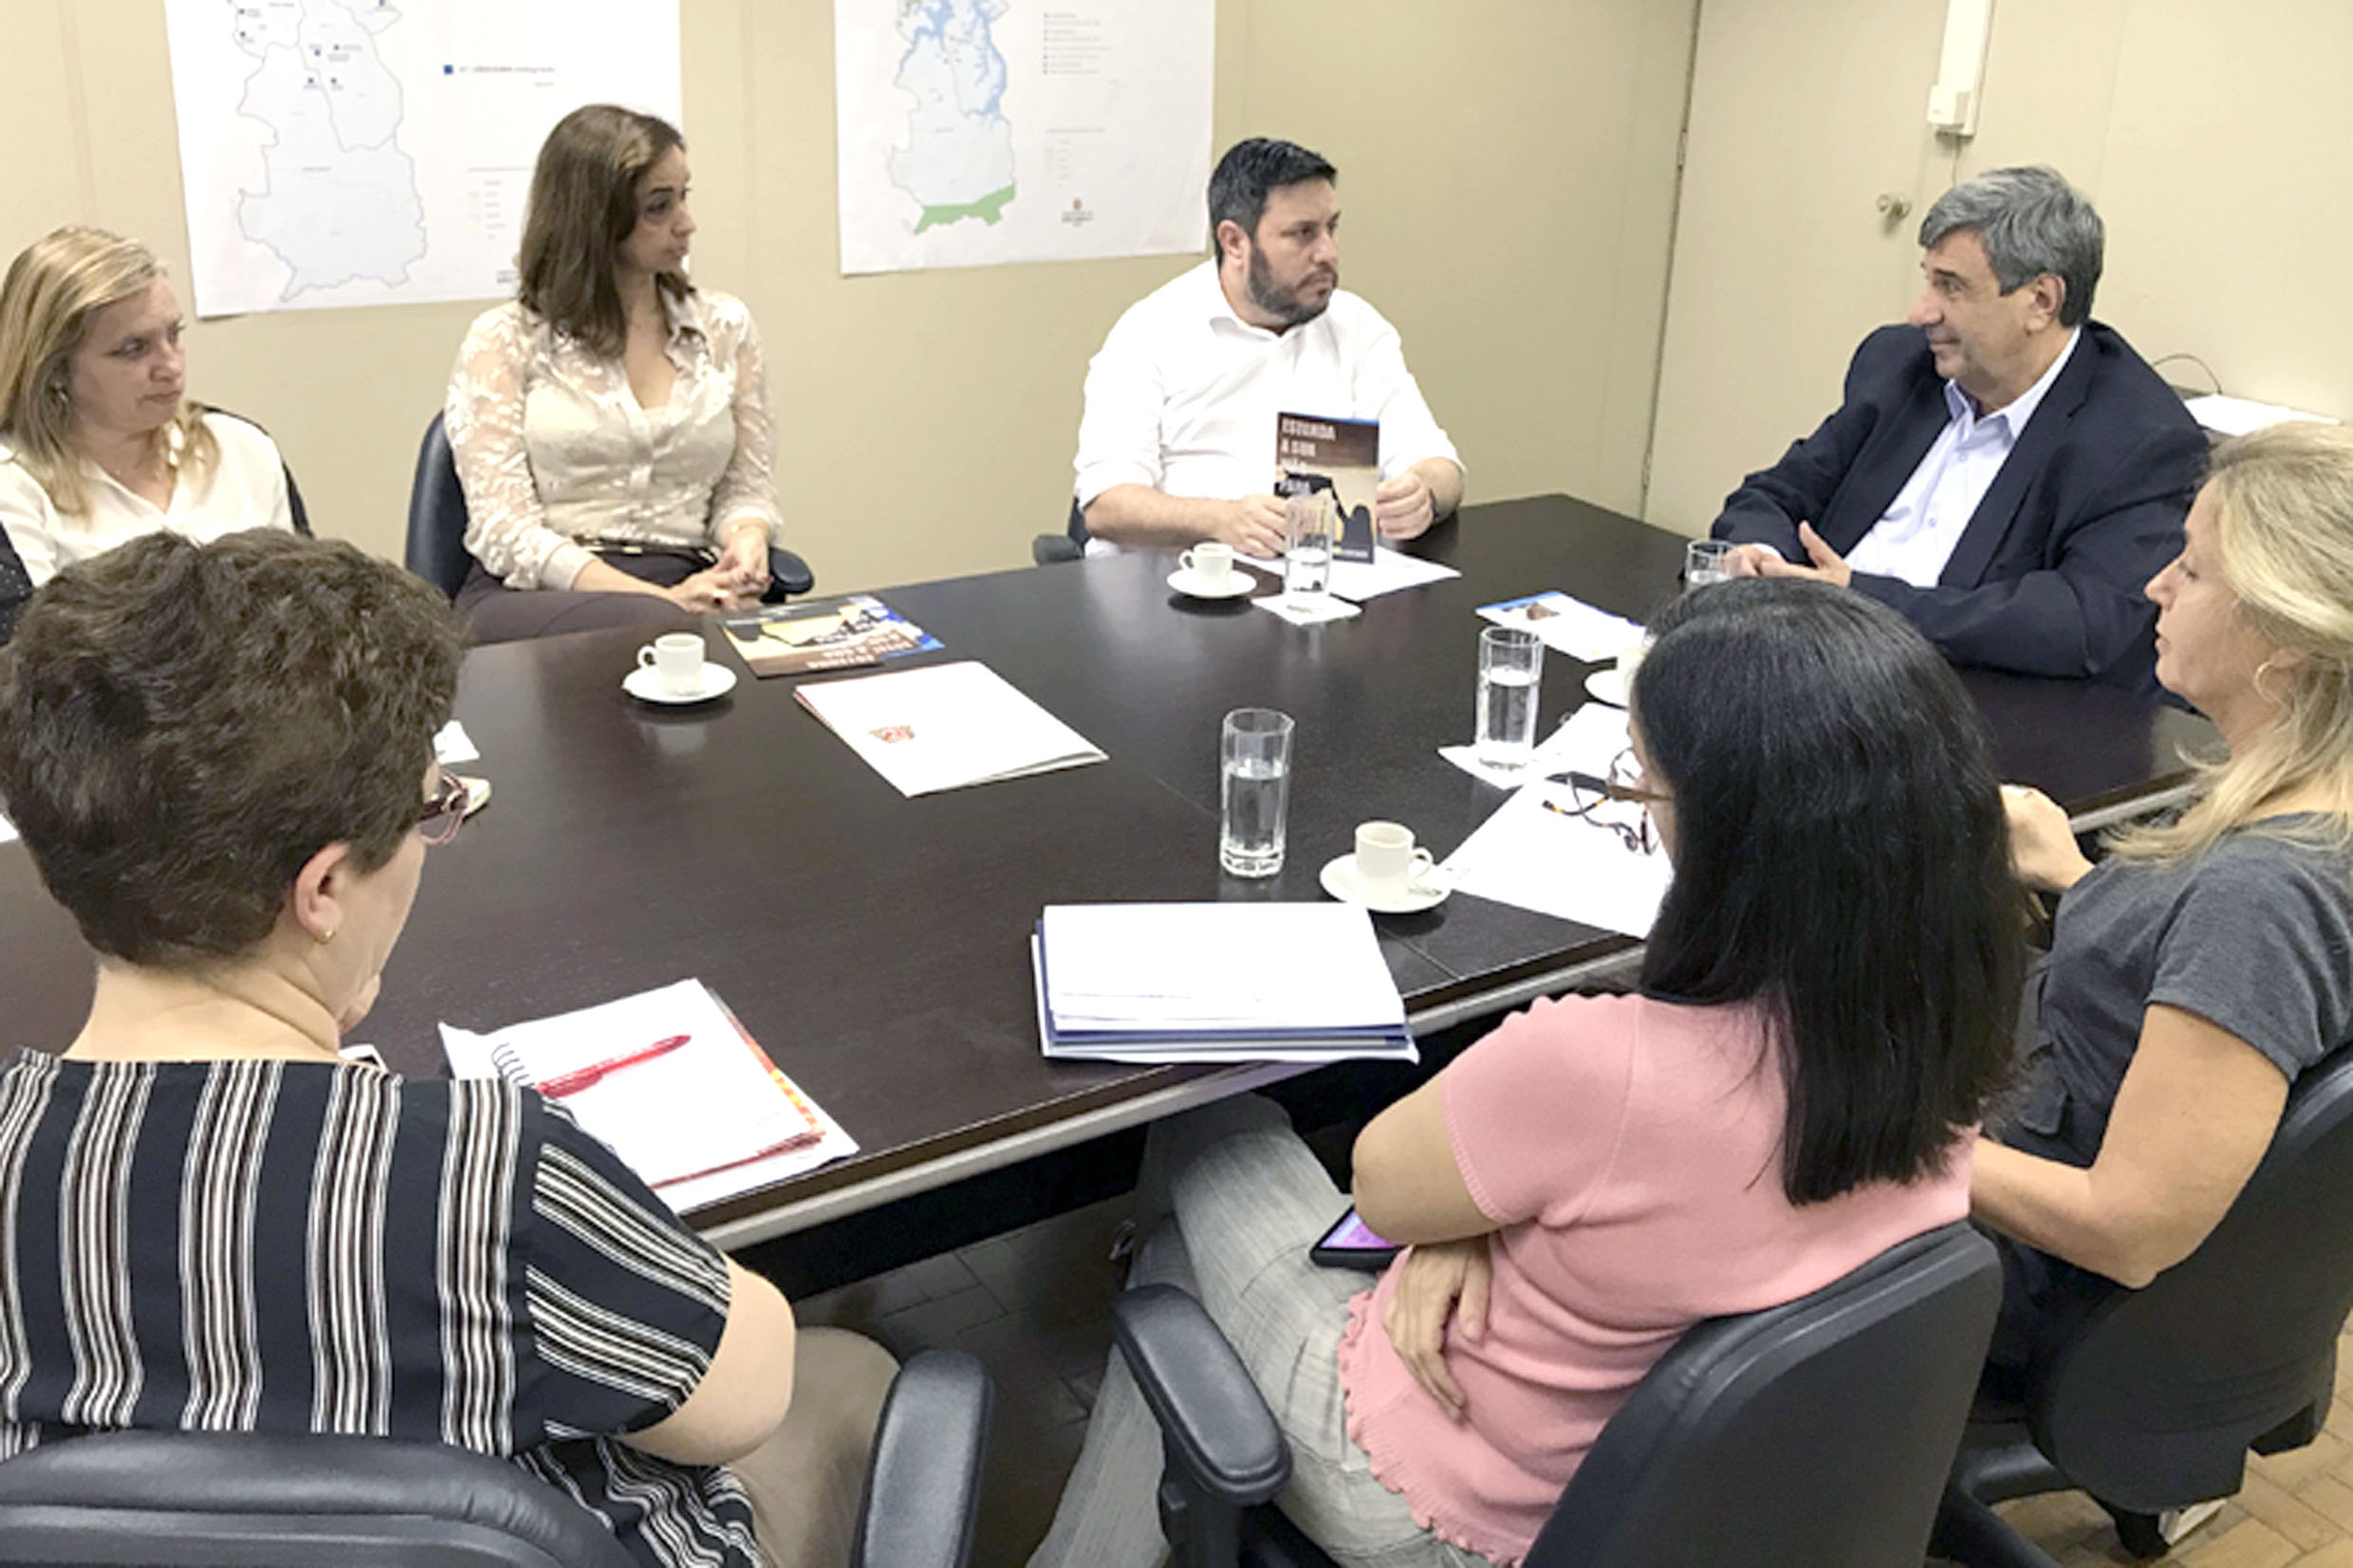 André Soares (ao centro)<a style='float:right' href='https://www3.al.sp.gov.br/repositorio/noticia/N-06-2018/fg225496.jpg' target=_blank><img src='/_img/material-file-download-white.png' width='14px' alt='Clique para baixar a imagem'></a>